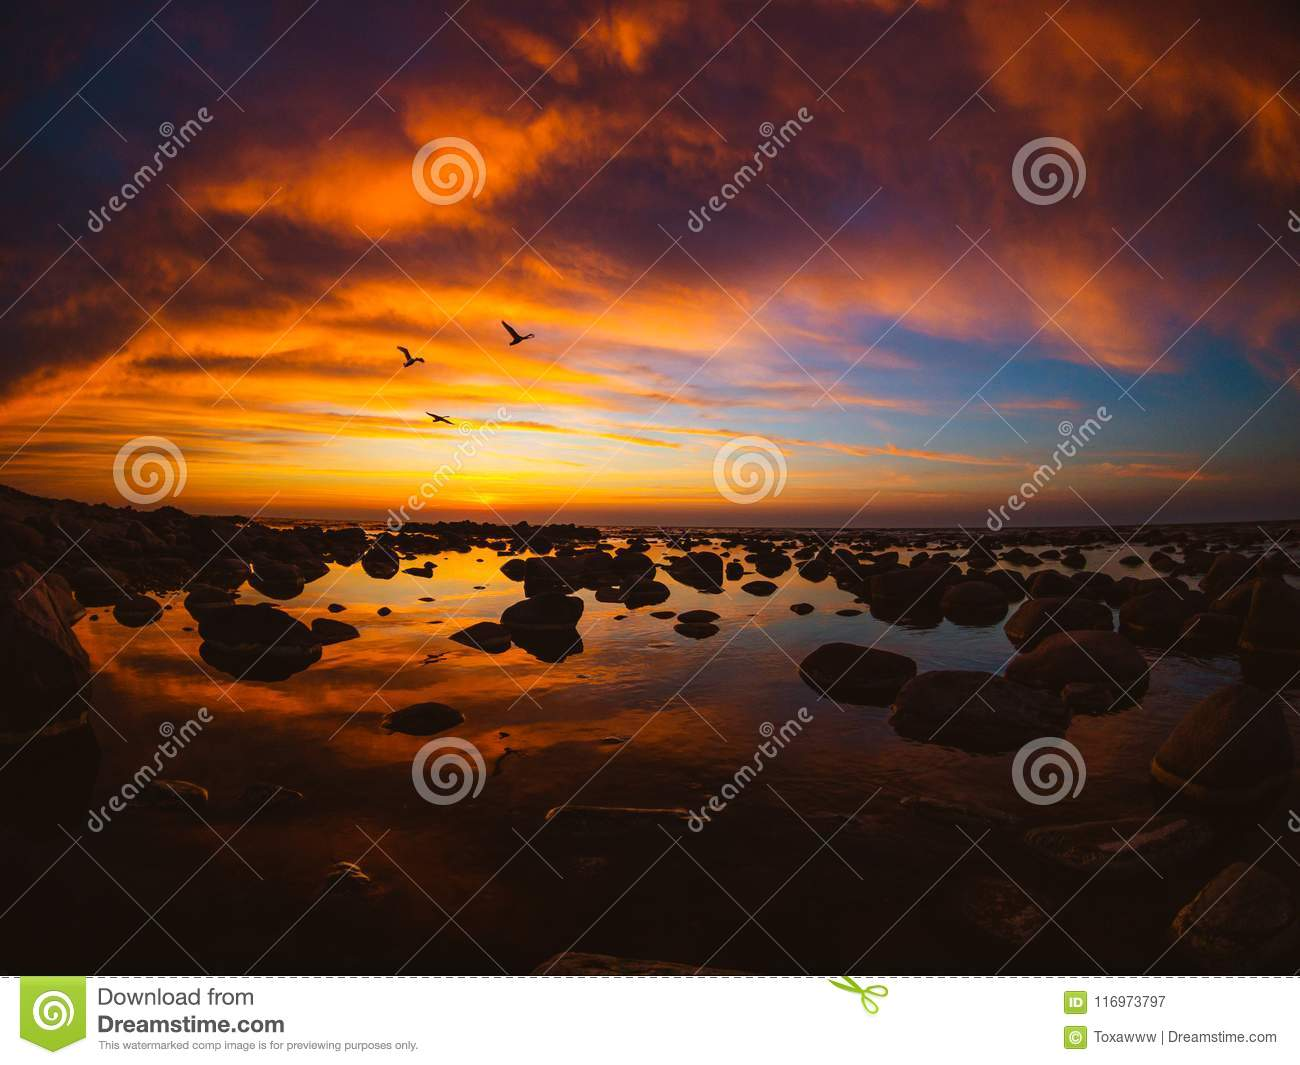 Beautiful sunset at sea side with flying swans